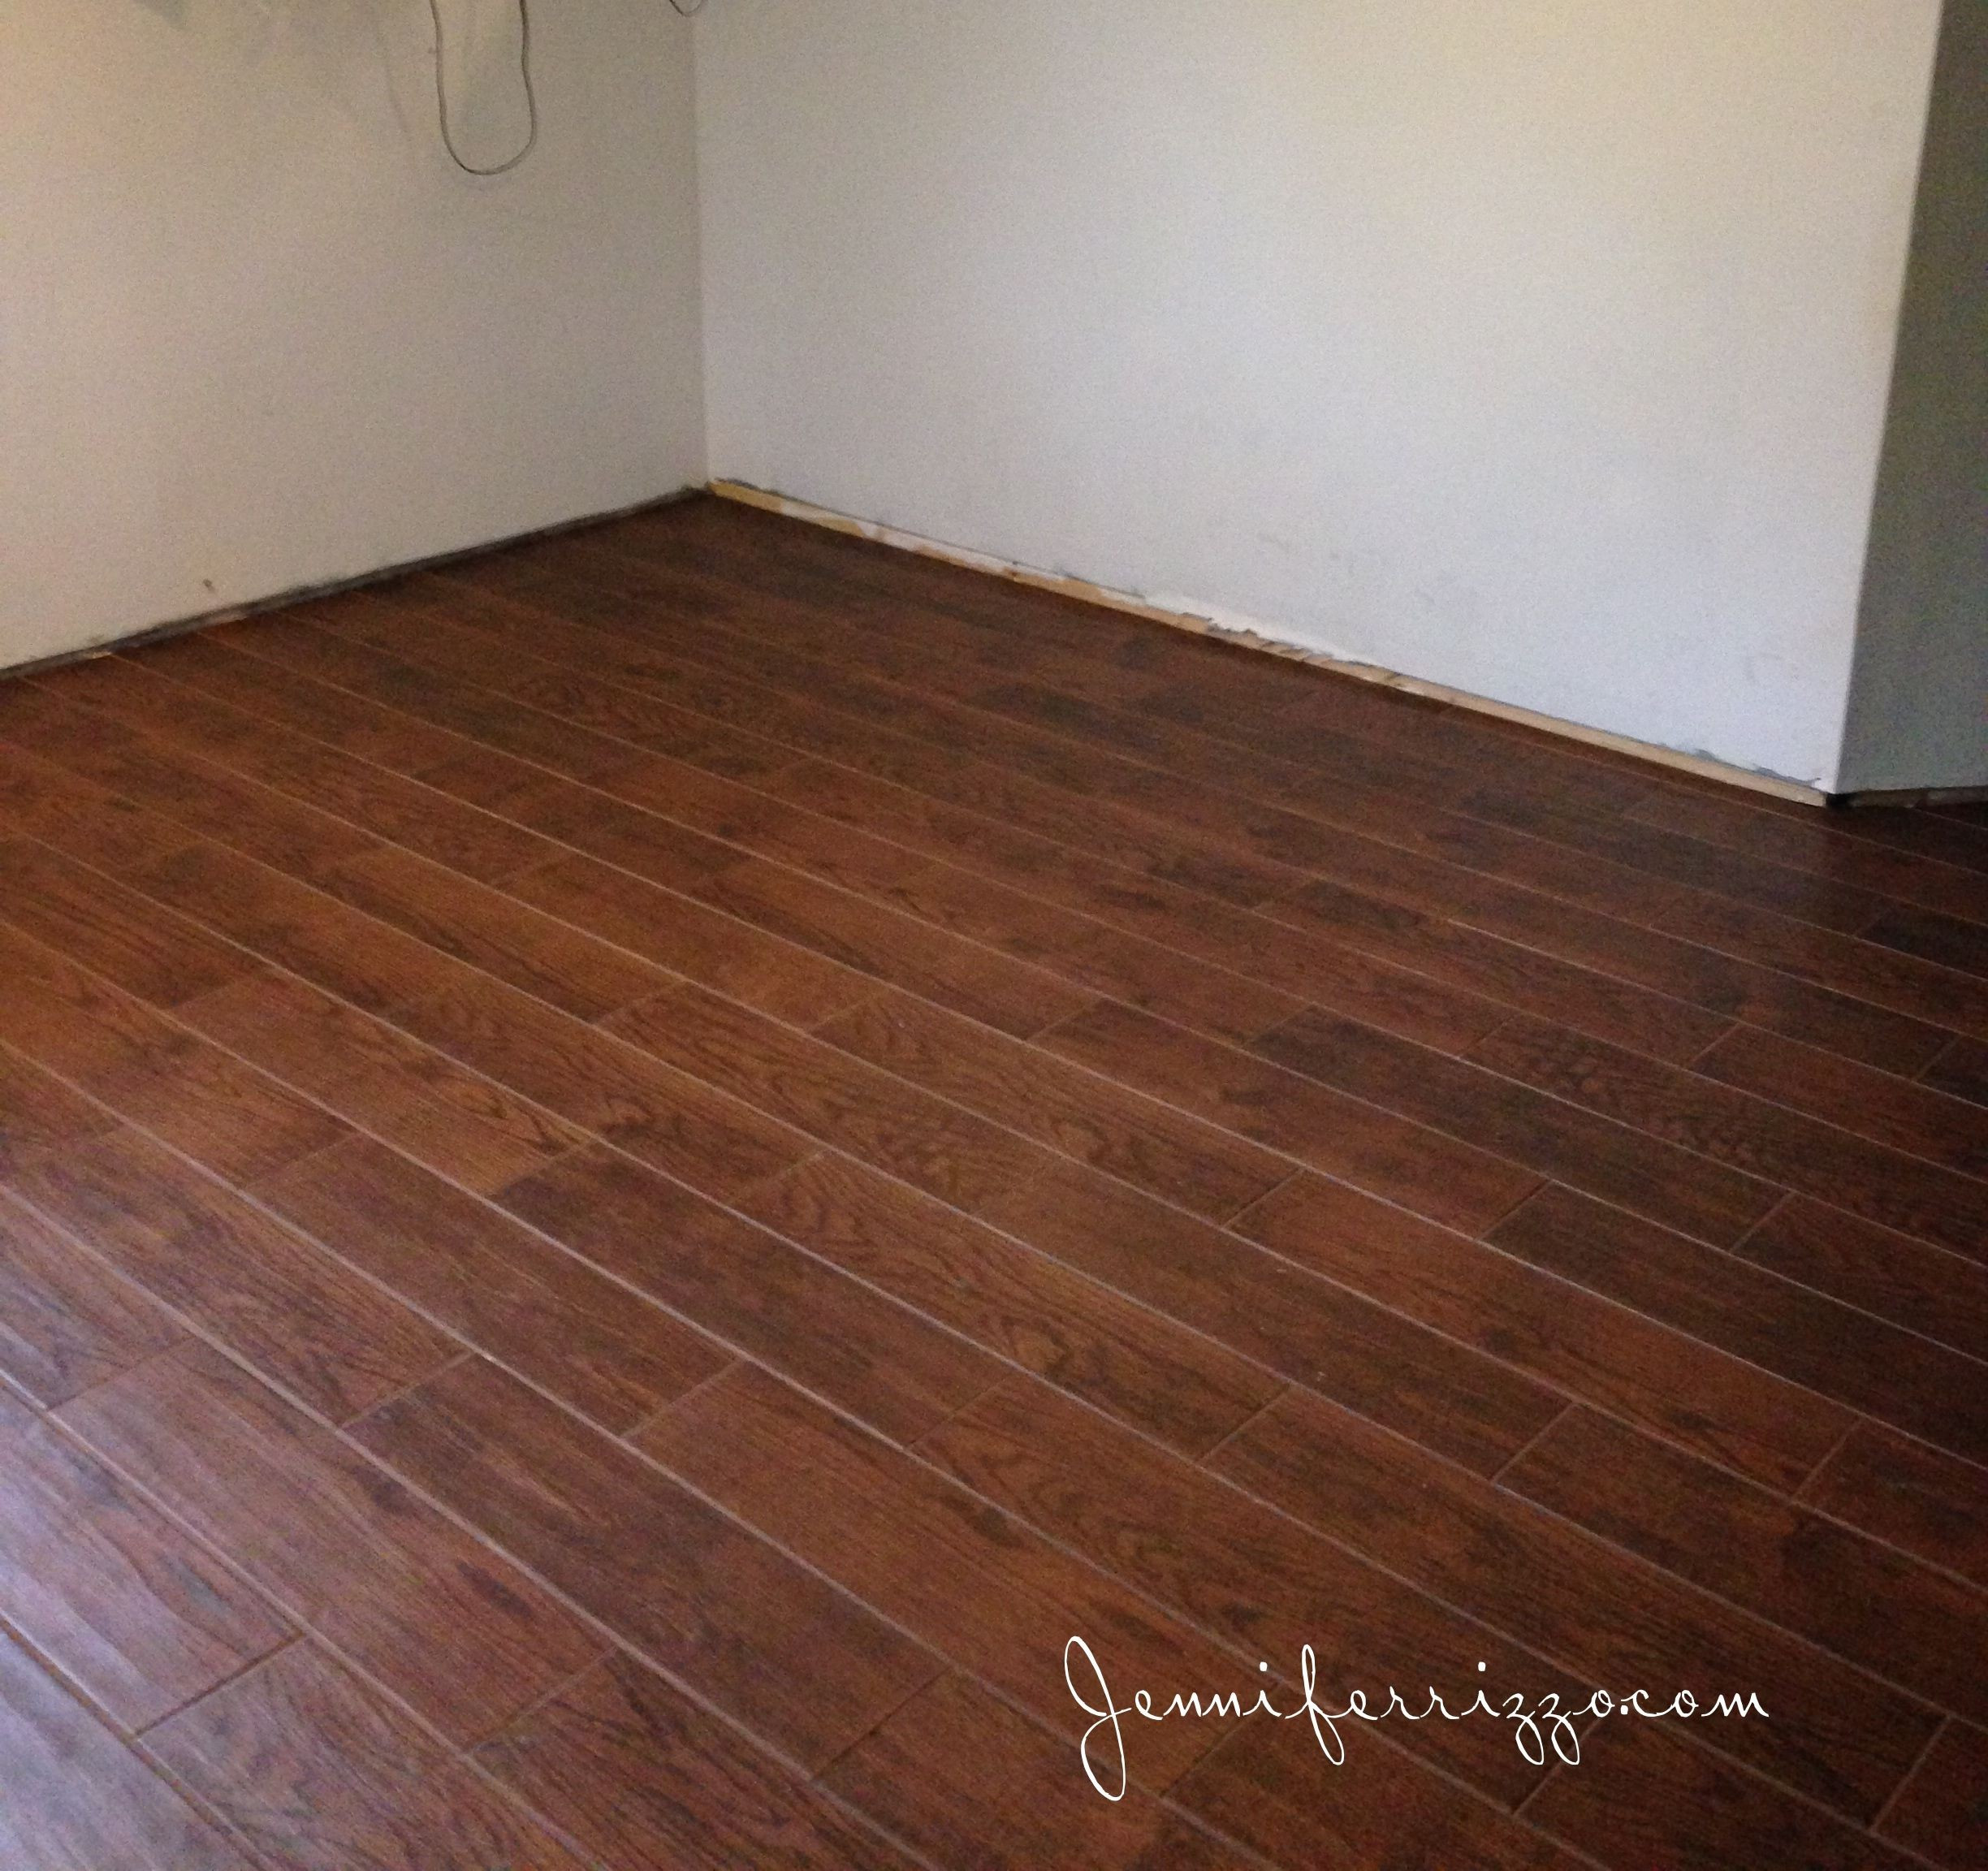 empire carpet hardwood flooring of 18 luxury home depot hardwood floors collection dizpos com in home depot hardwood floors best of our wood look ceramic tile is finally installed photograph of